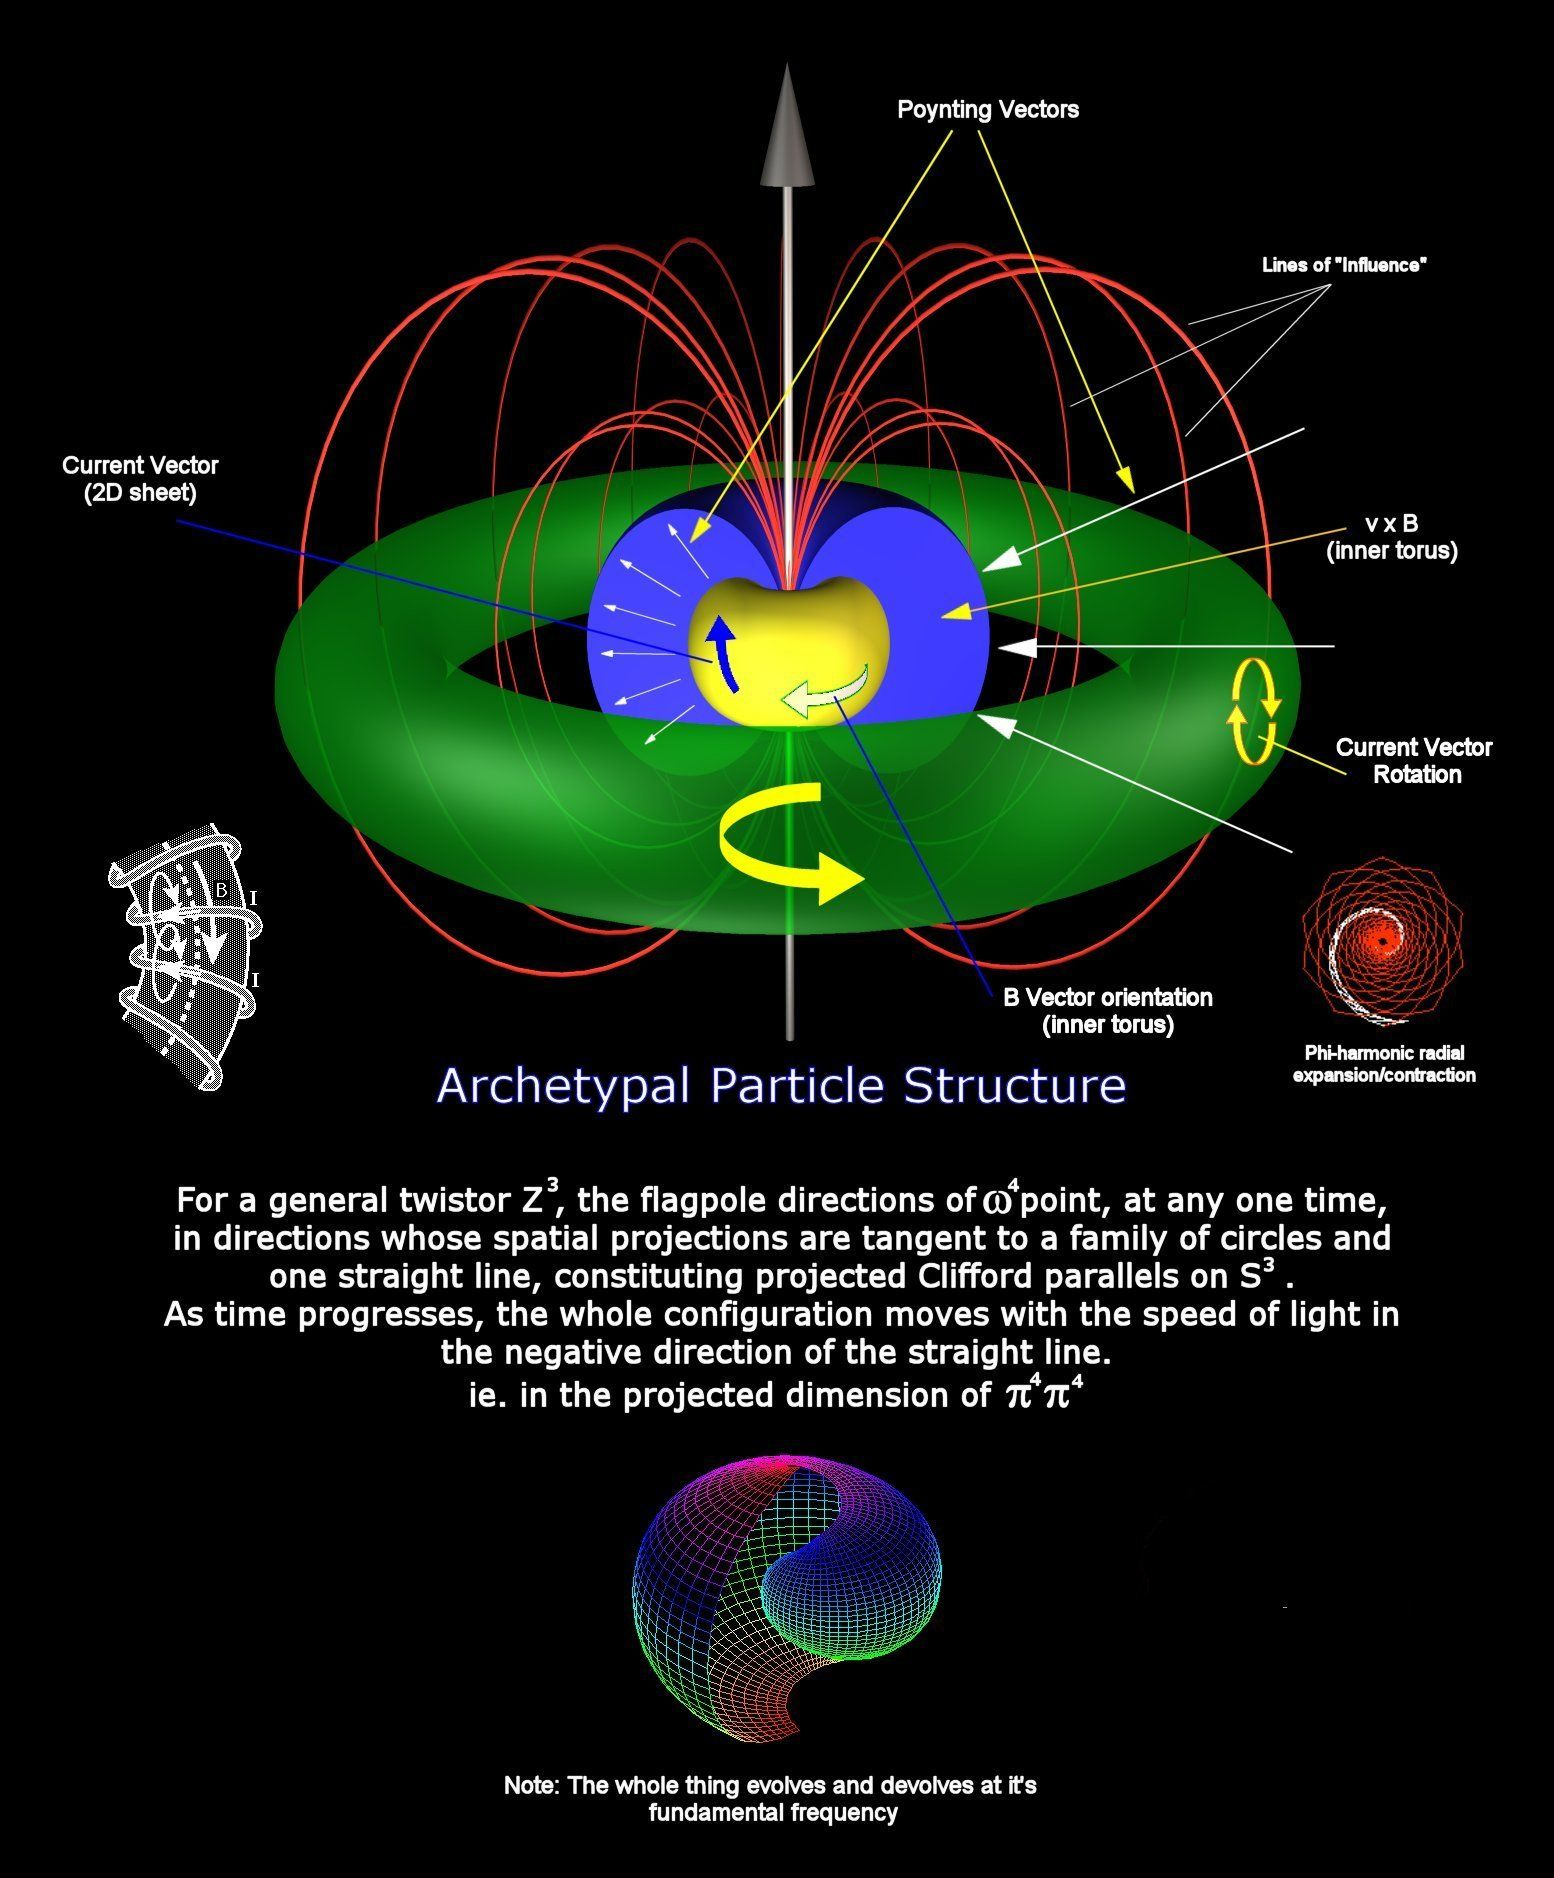 medium resolution of archetypal particle structure physics and mathematics modern physics quantum physics atomic theory